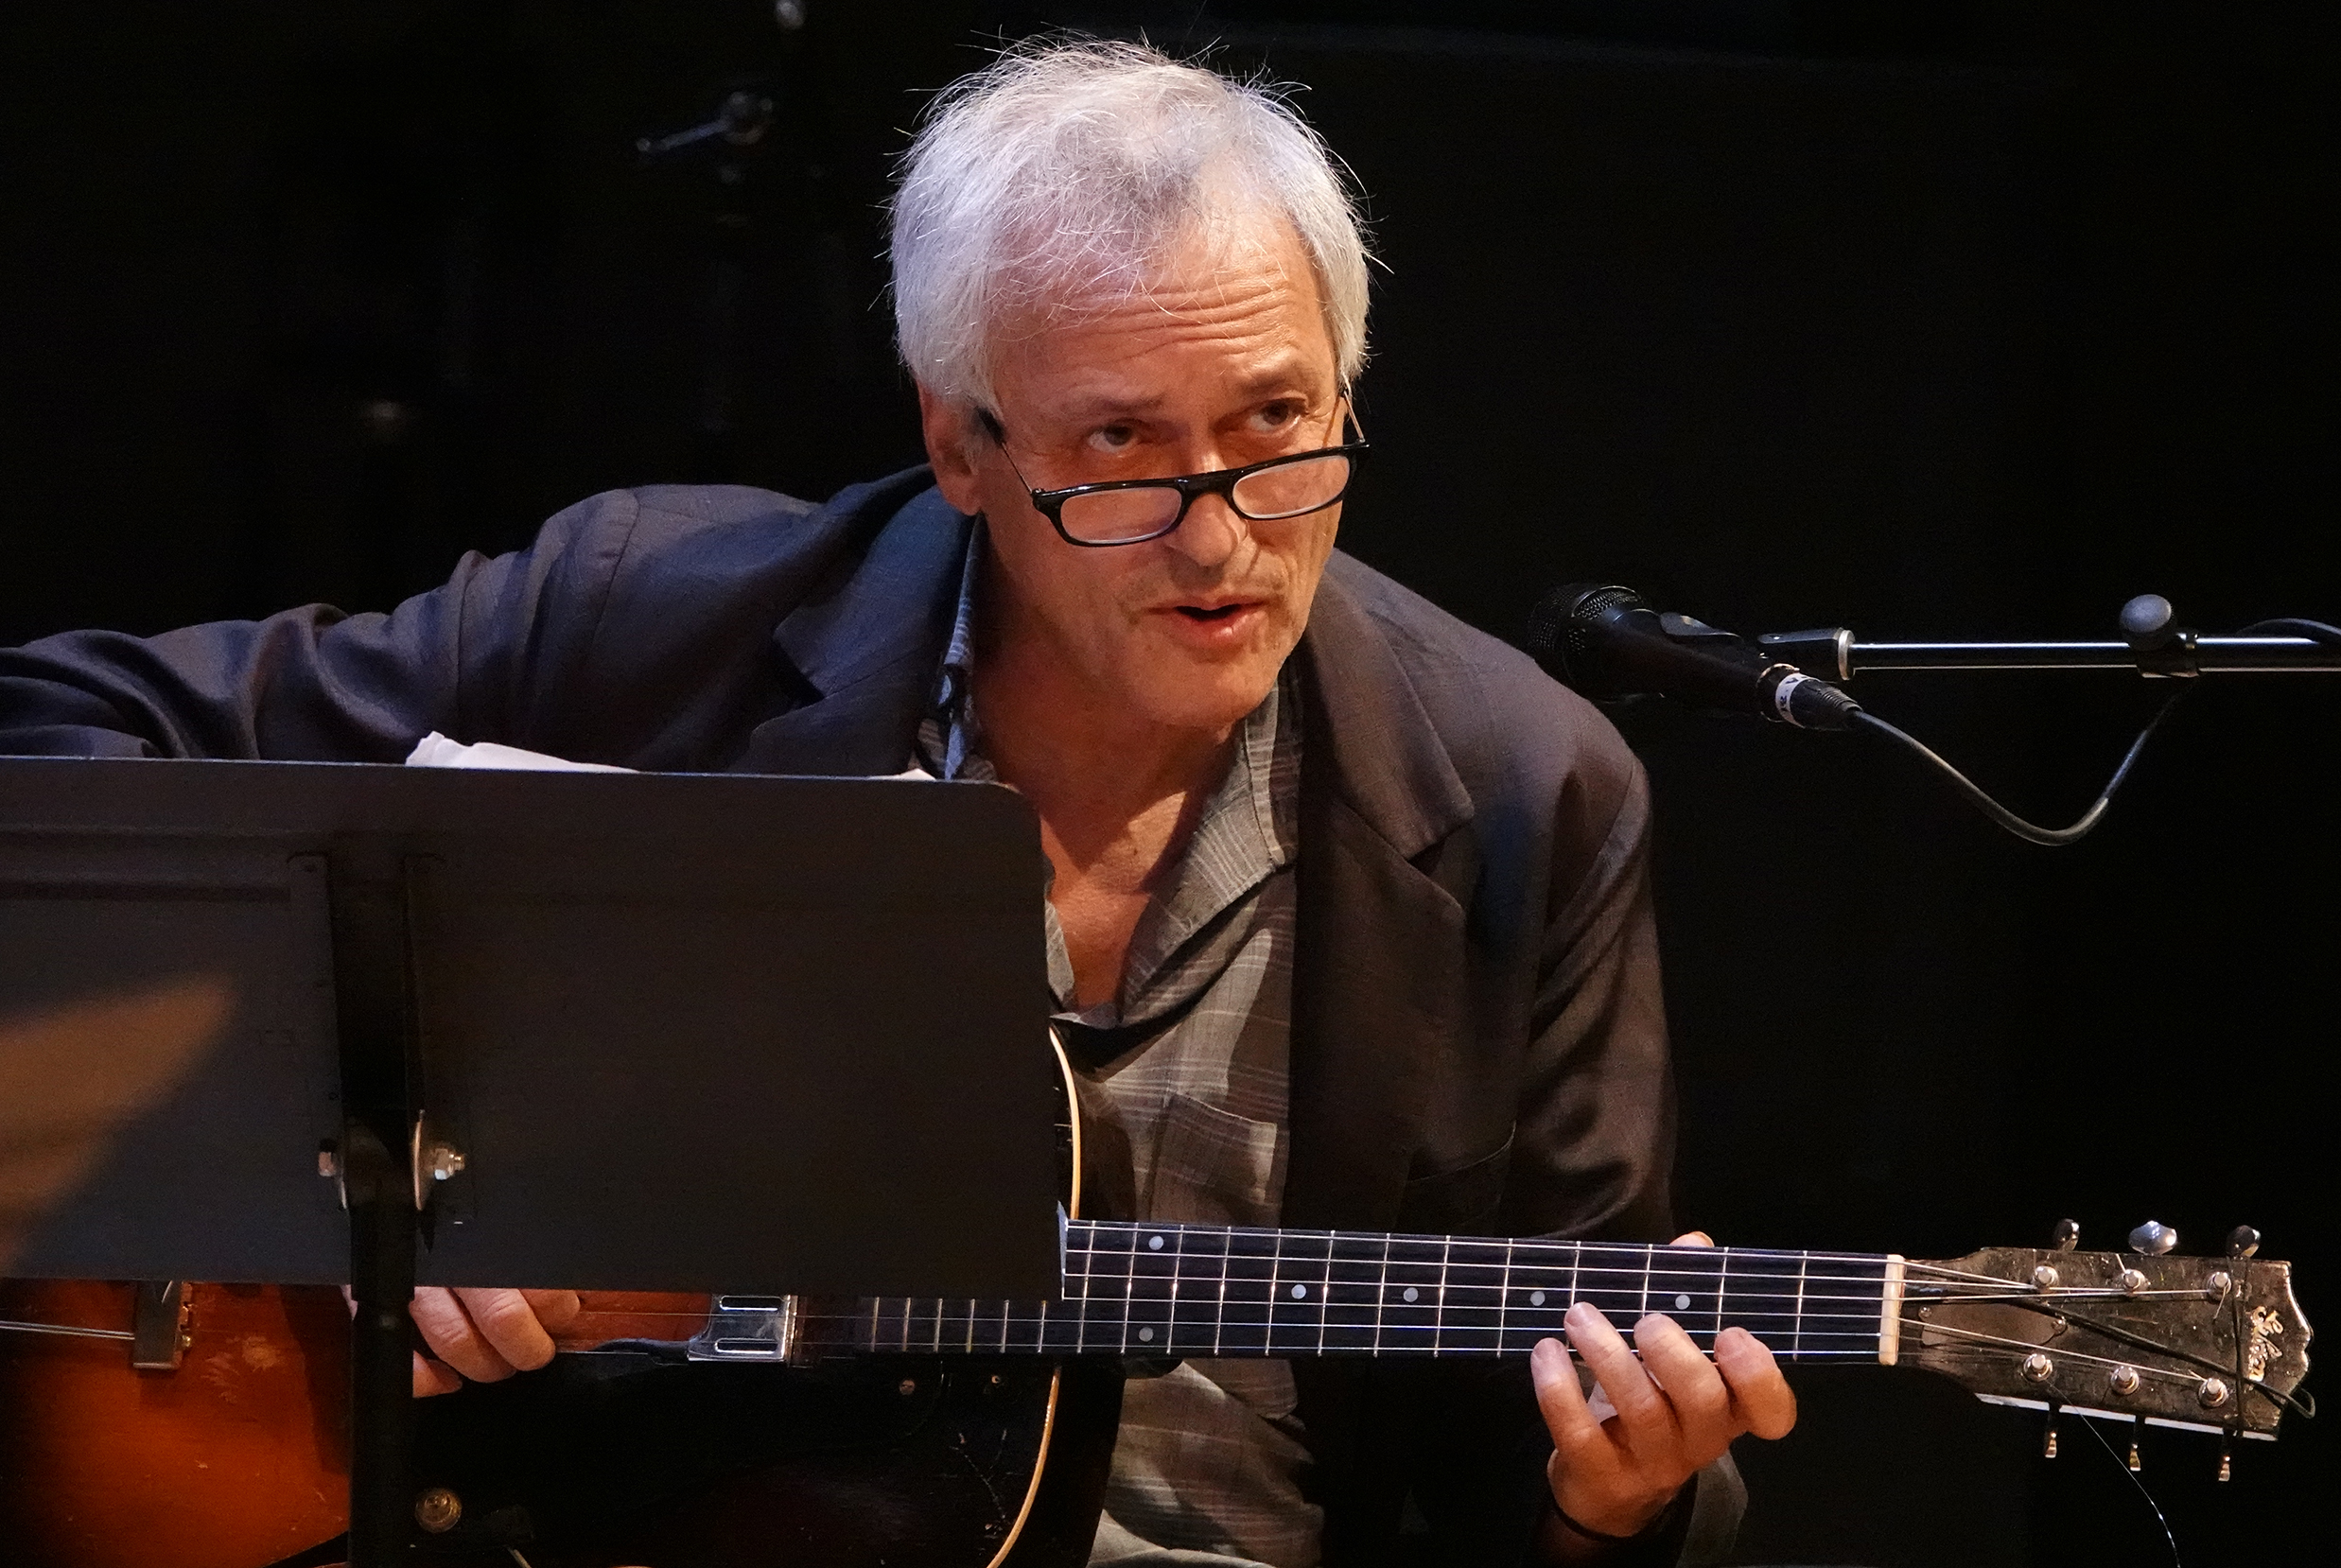 Marc Ribot at 24th Annual Vision Festival